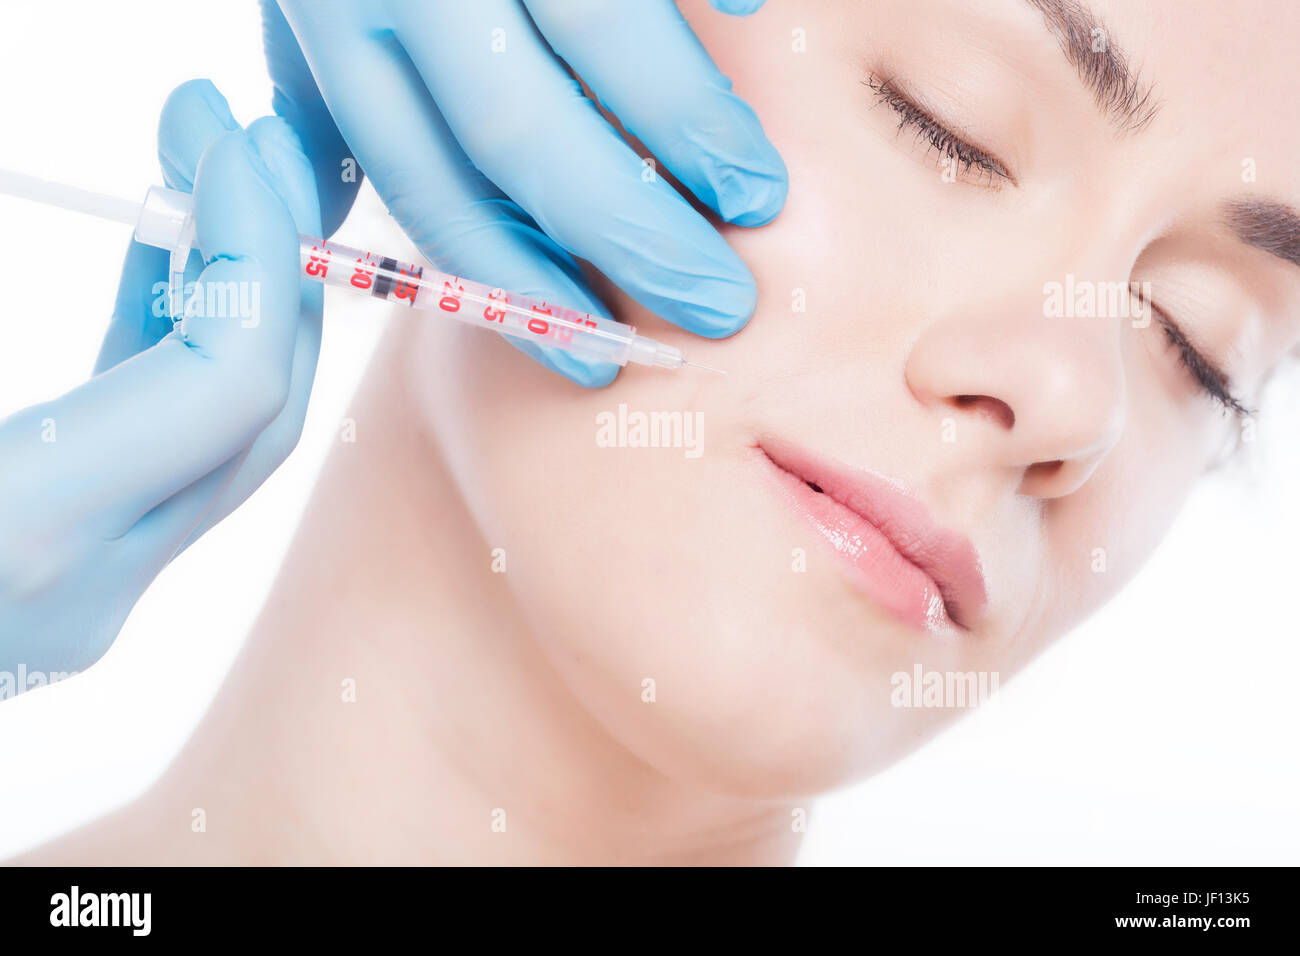 Aesthetic medicine. Young beautiful woman is having botox face injections. Anti-aging skincare and plastic surgery - Stock Image